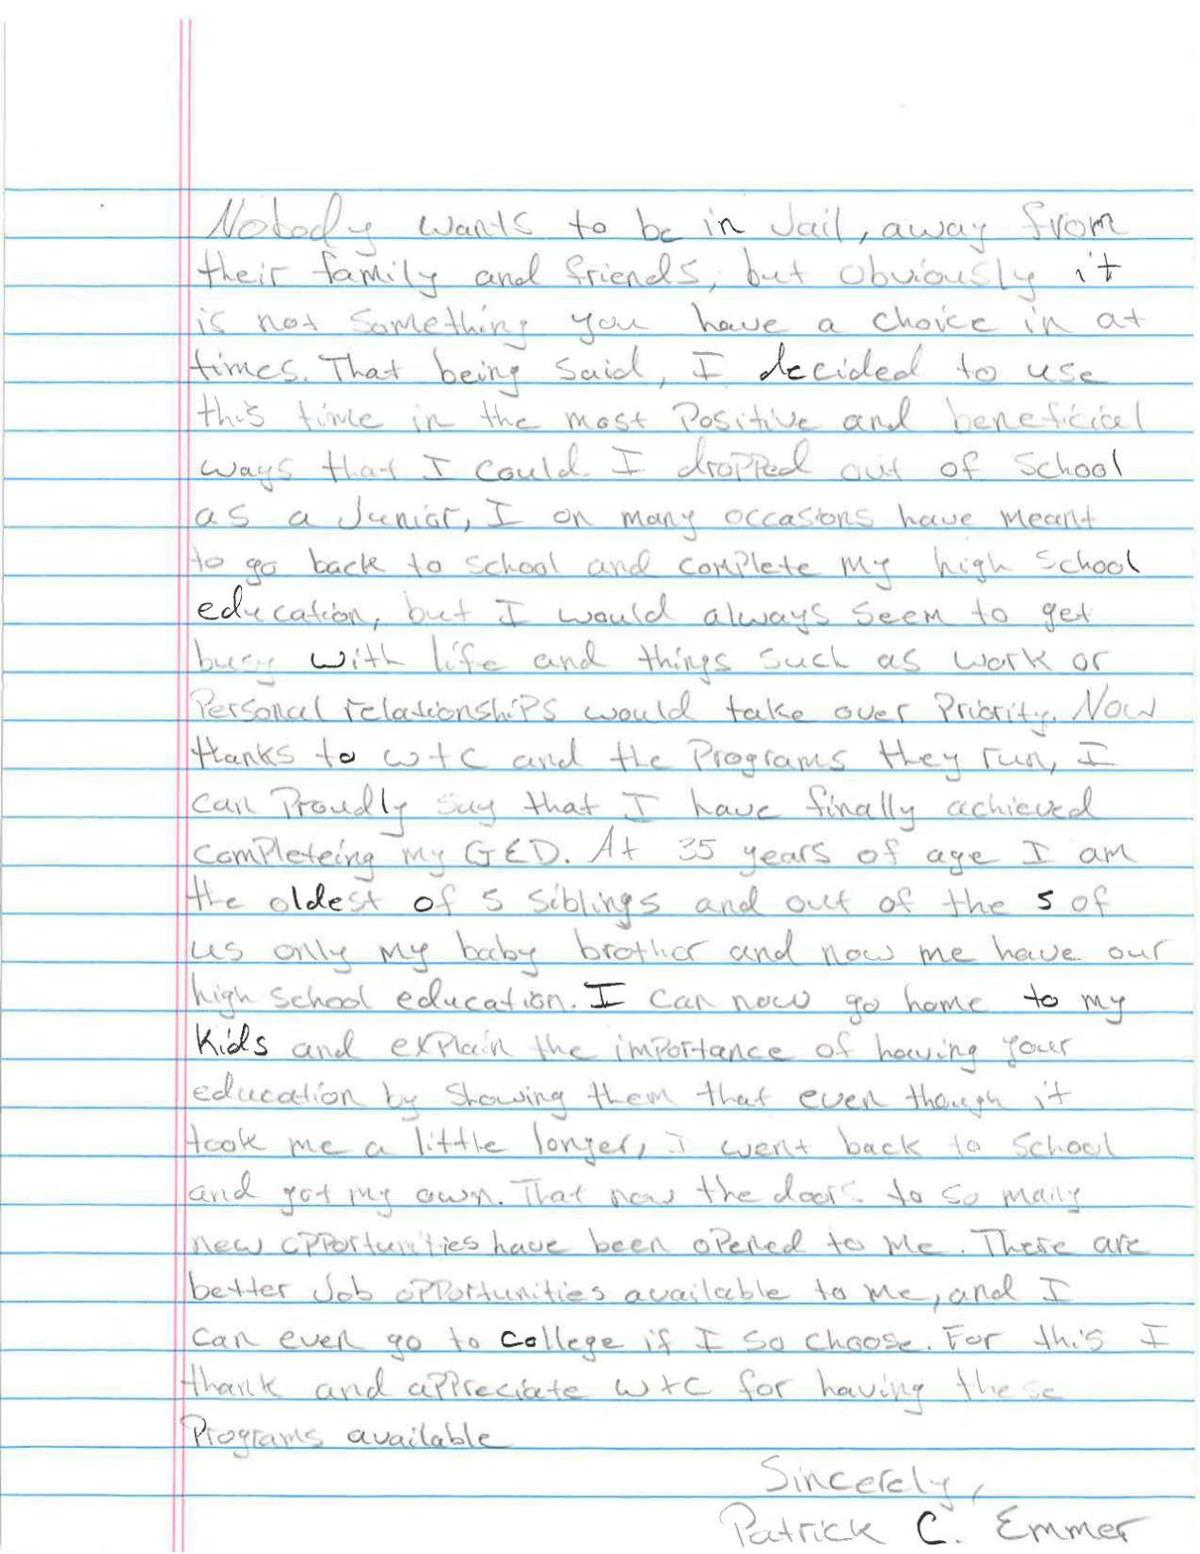 Letter from Patrick Emmer, Project Proven student